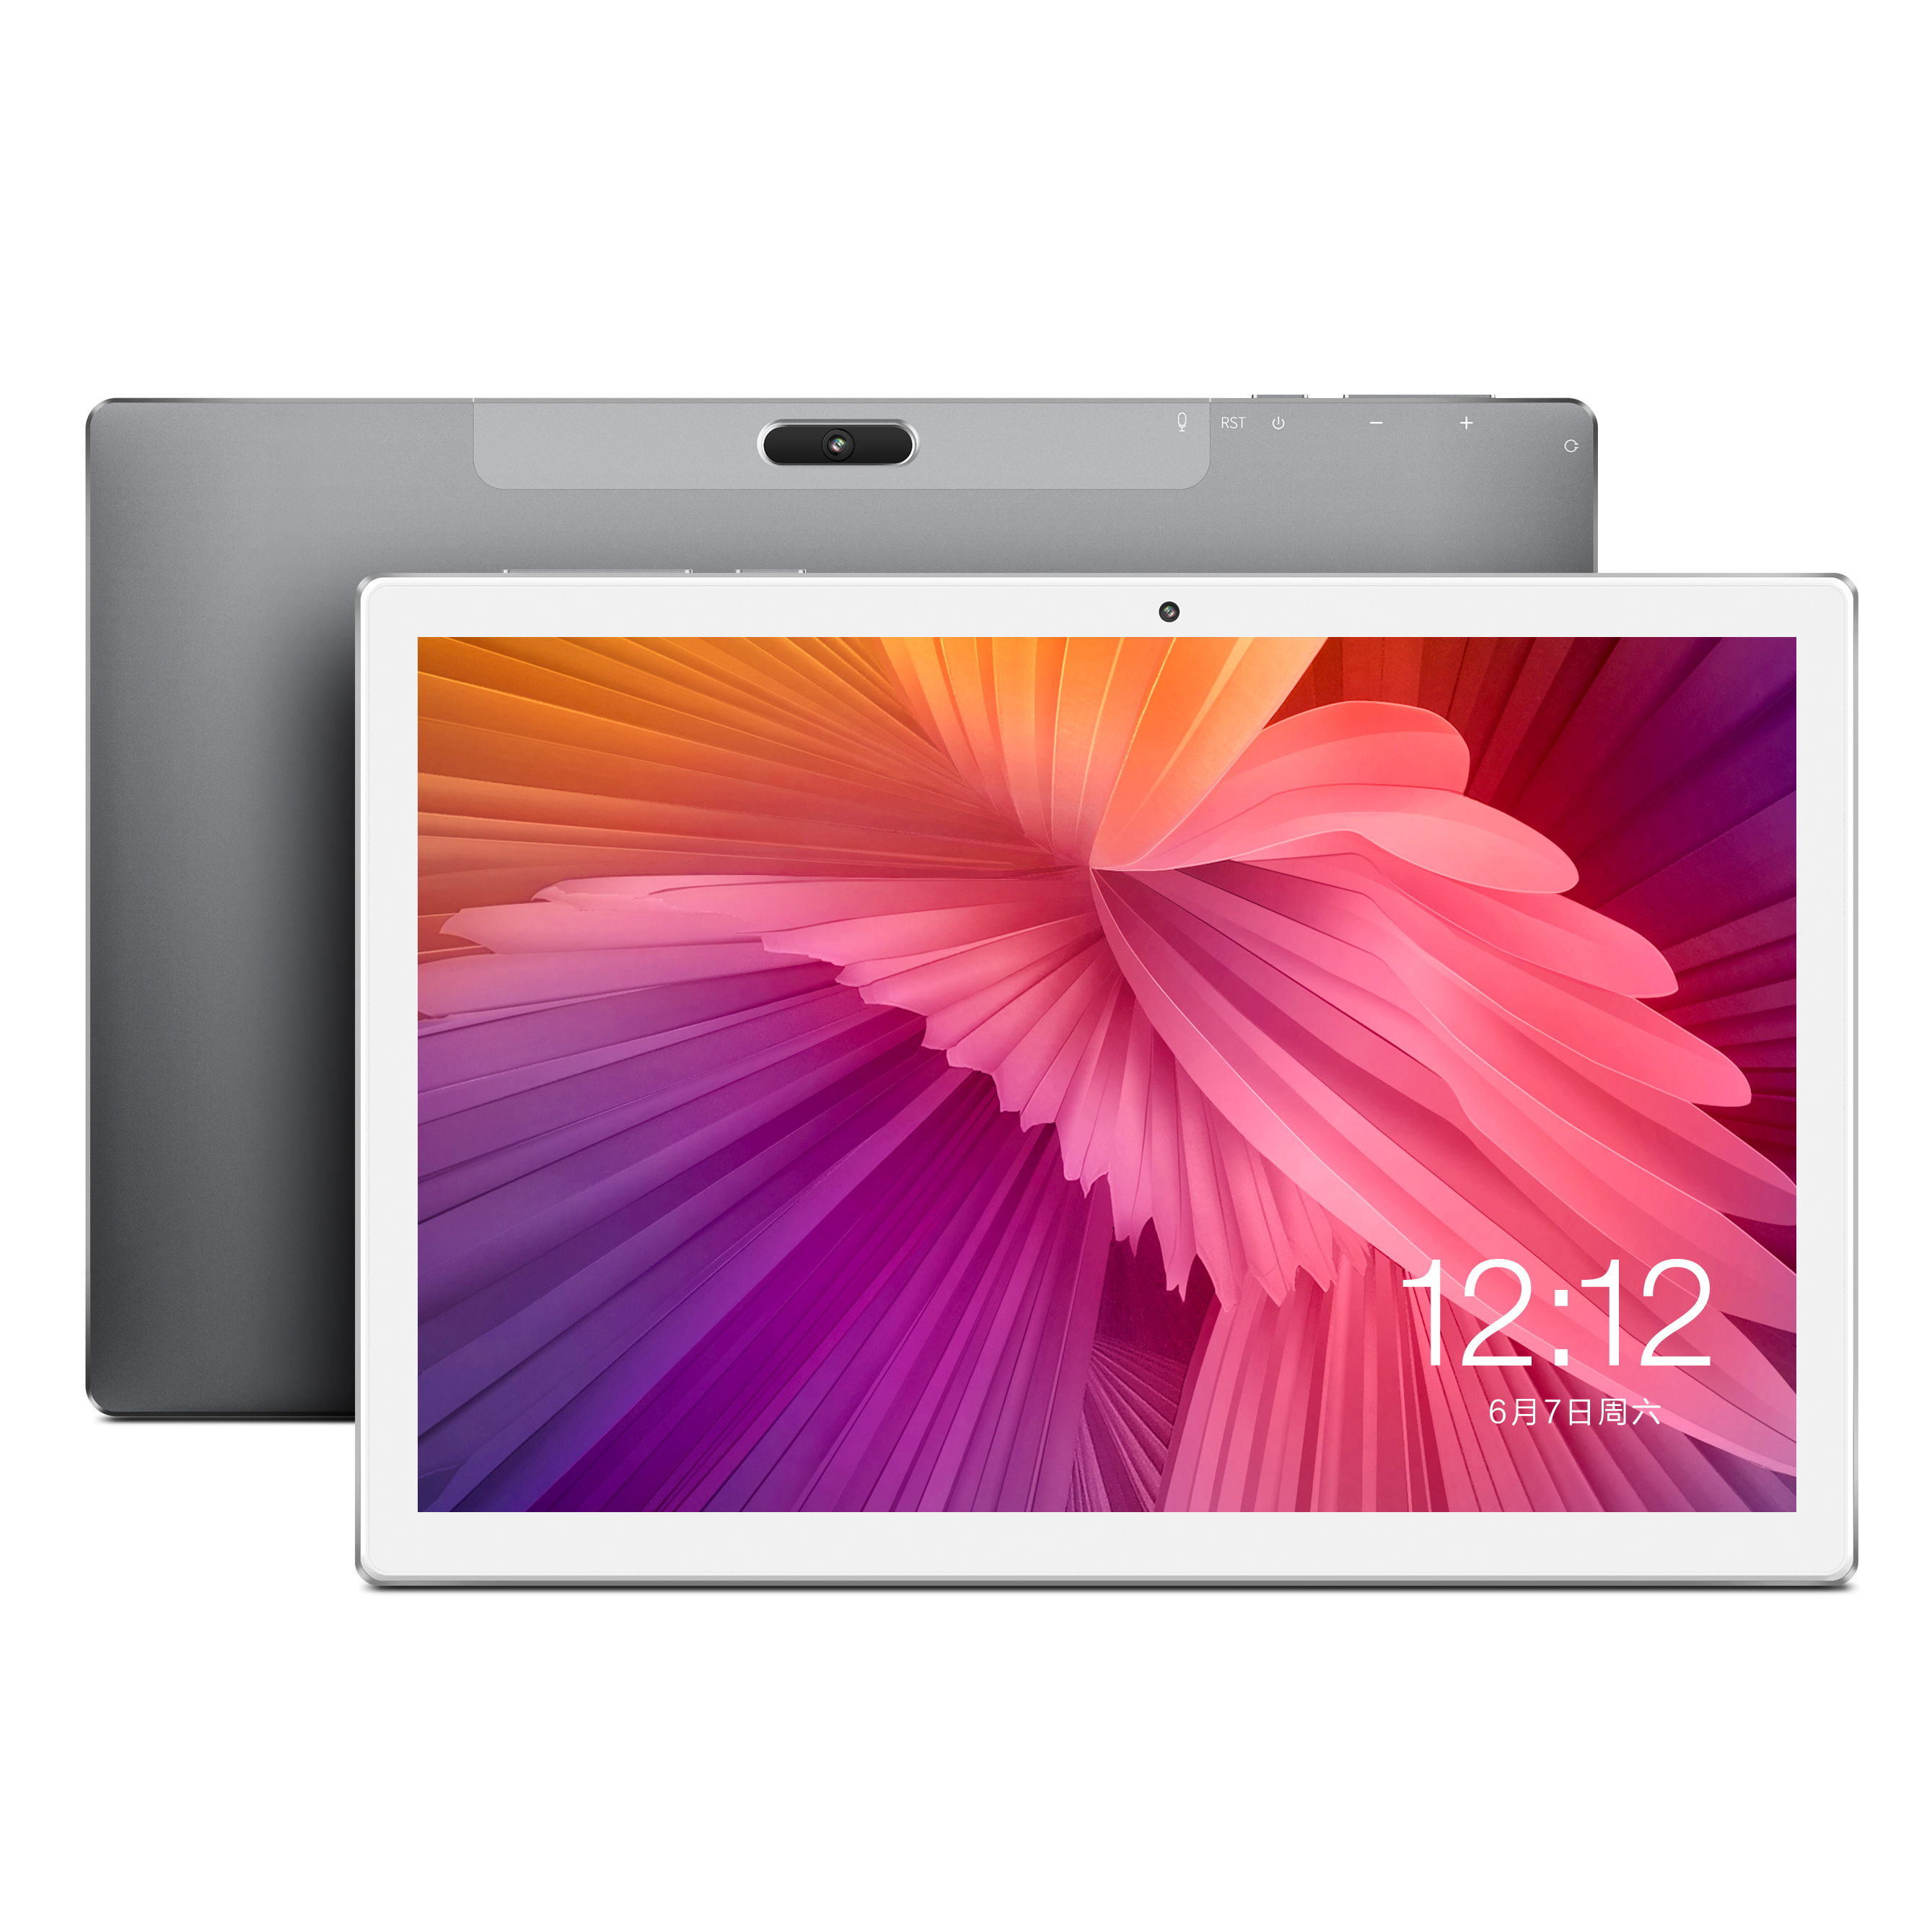 Teclast M30 10.1 Inch Android 8.0 MT6797X ( X27 ) 1.4GHz Decore CPU 3GB RAM 64GB ROM 5.0MP+2.0MP Type-C 4G Phone Call Tablet PC